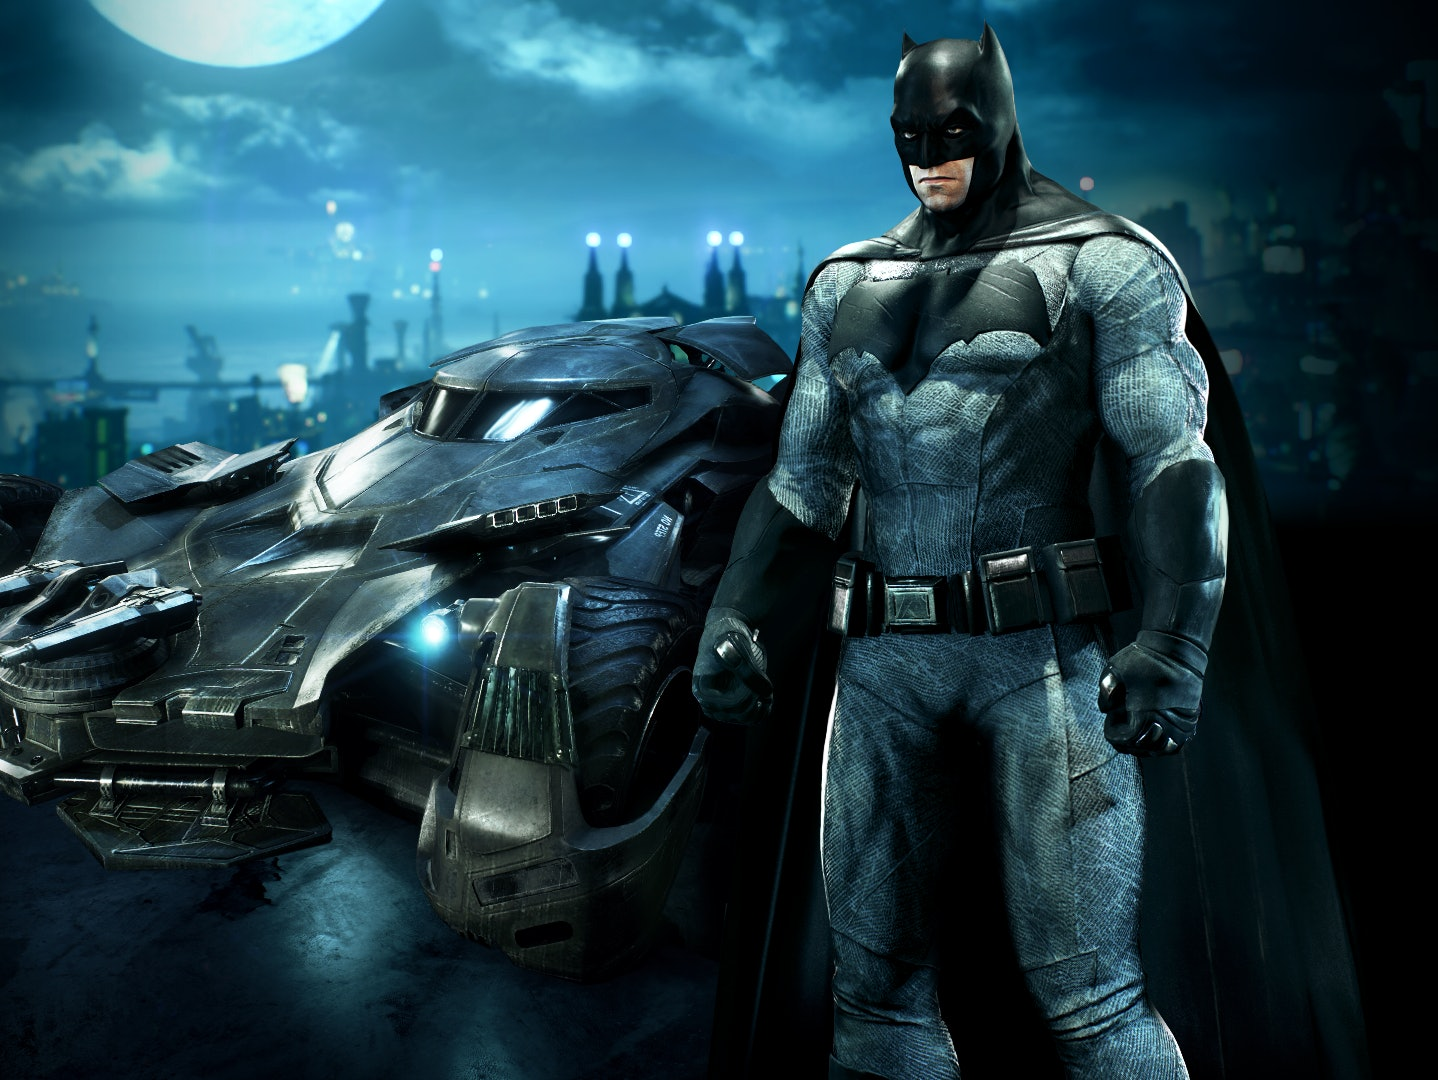 'Batman: Arkham Knight' DLC Has Affleck and Bale, Skips Clooney and Kilmer